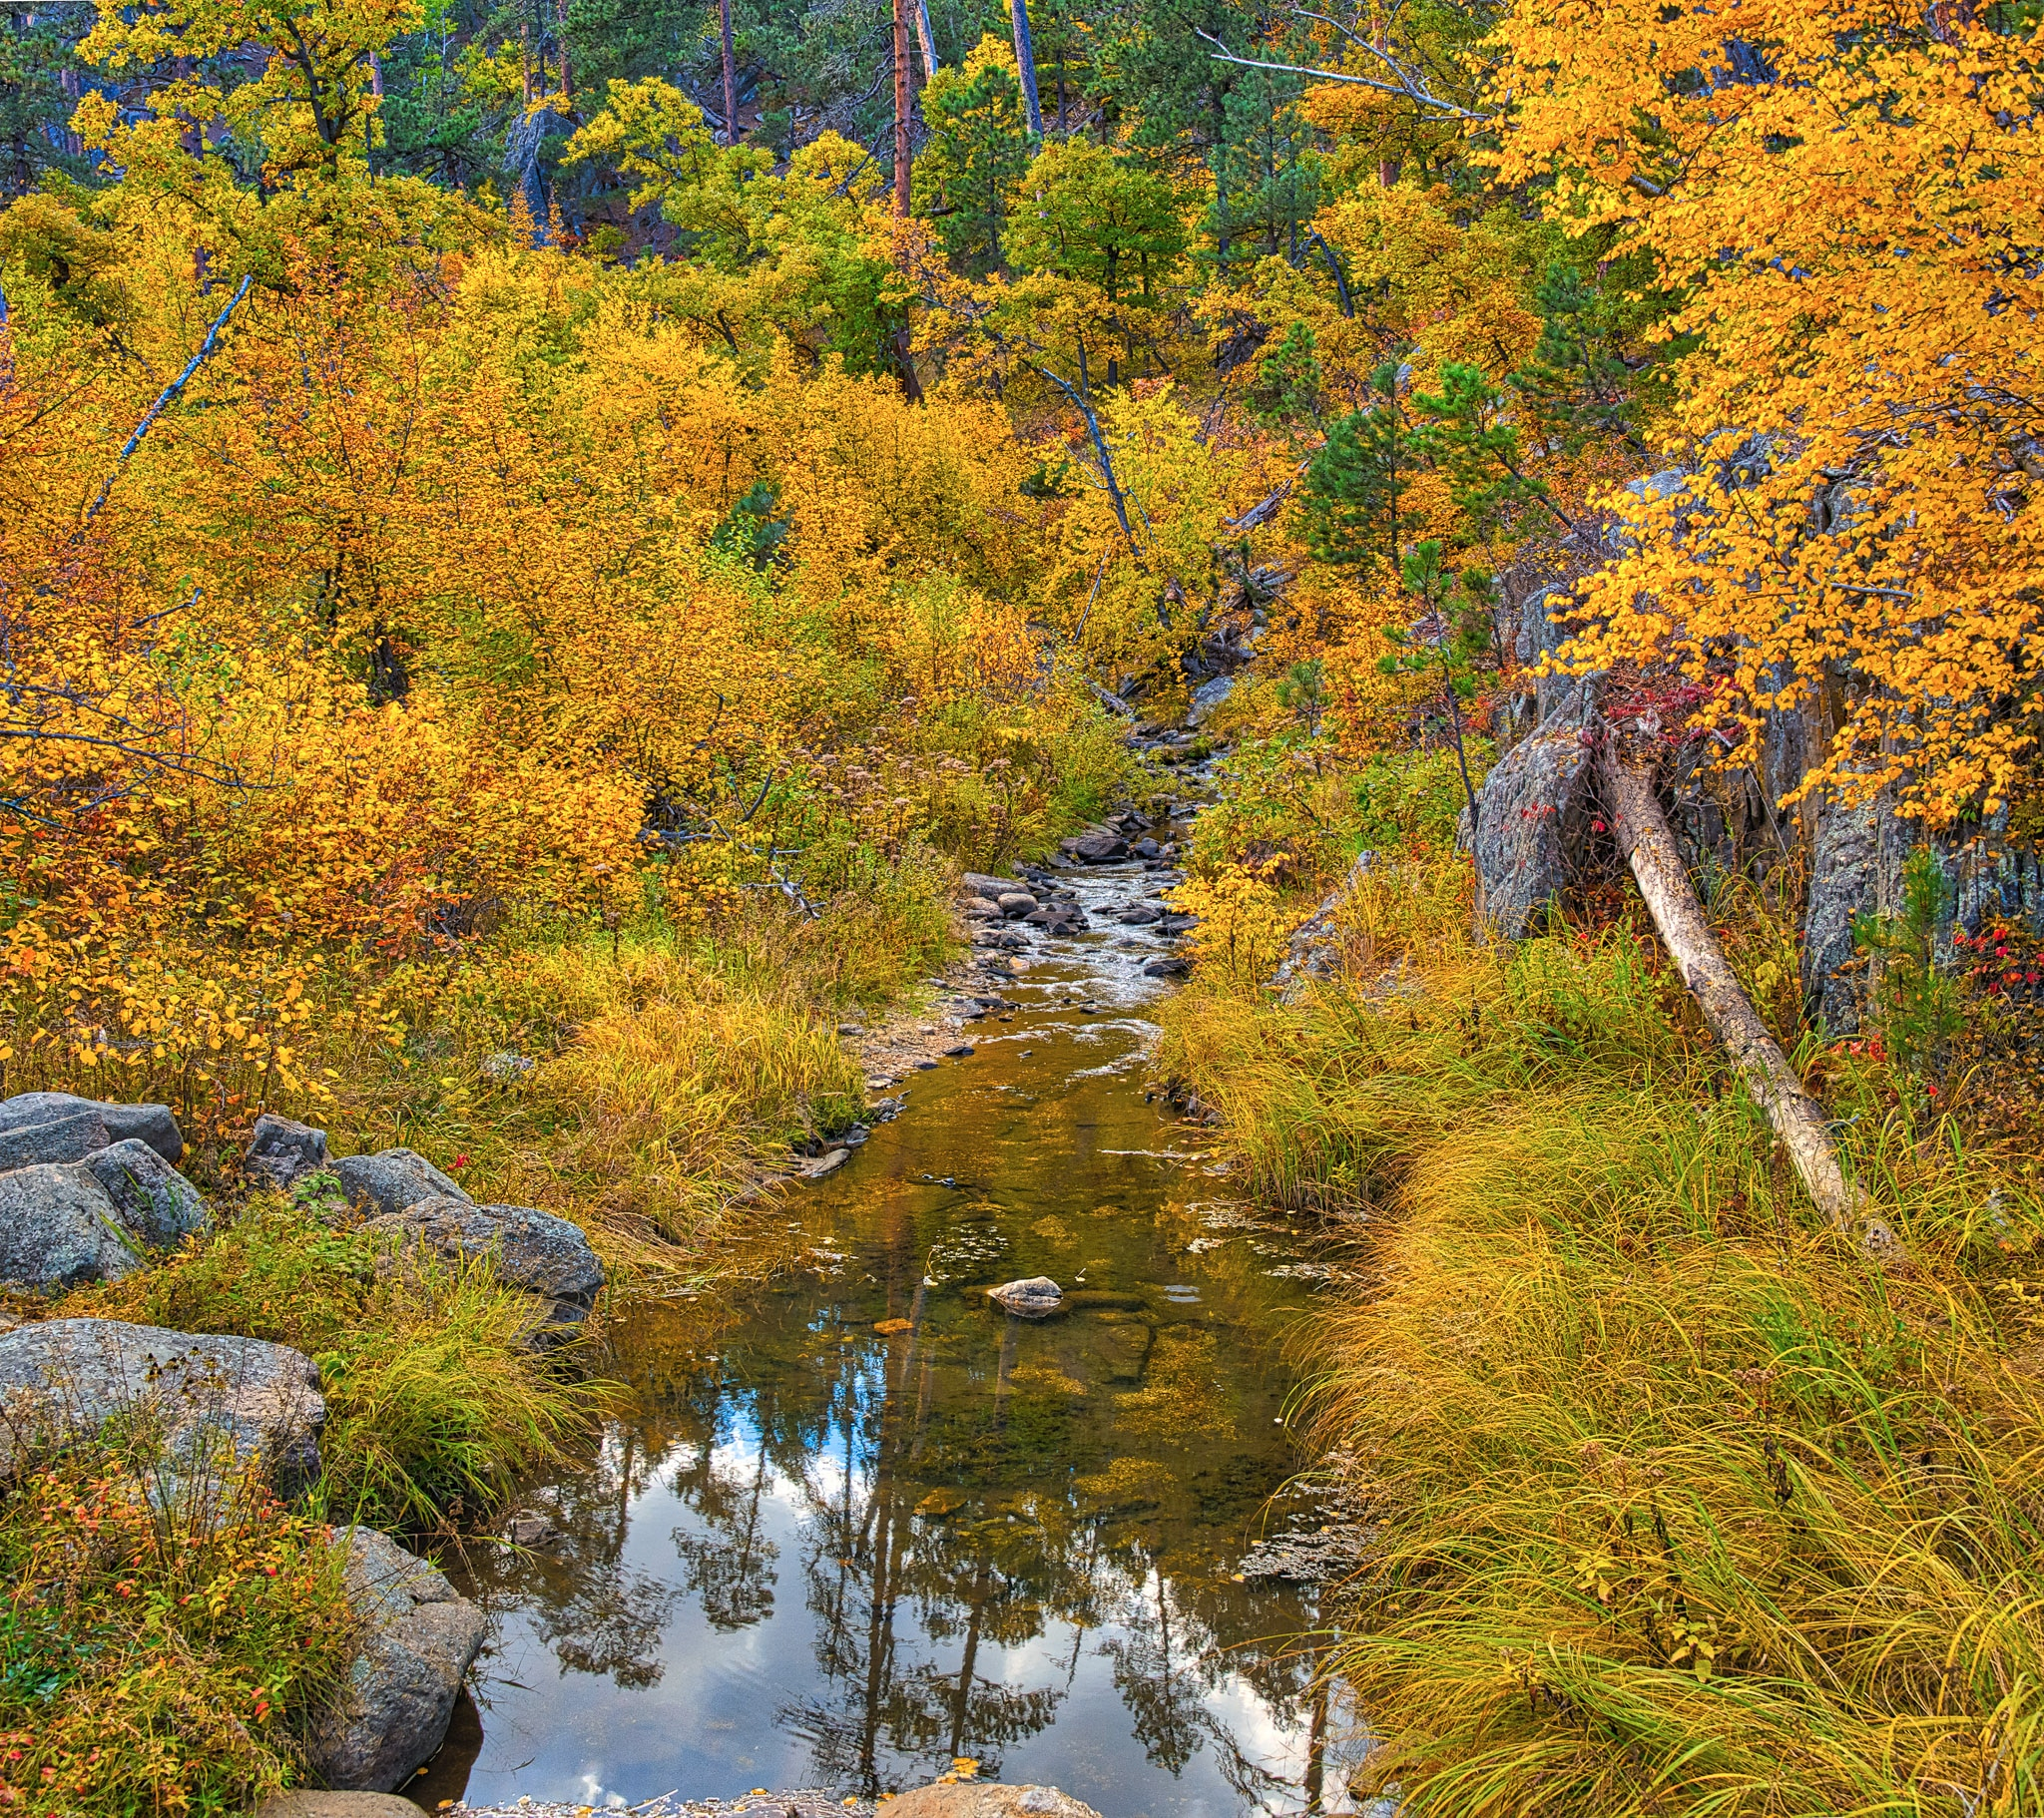 Autumn-colored trees and green pine trees are reflected in a stream along the Iron Mountain Highway in Black Hills National Forest in South Dakota.